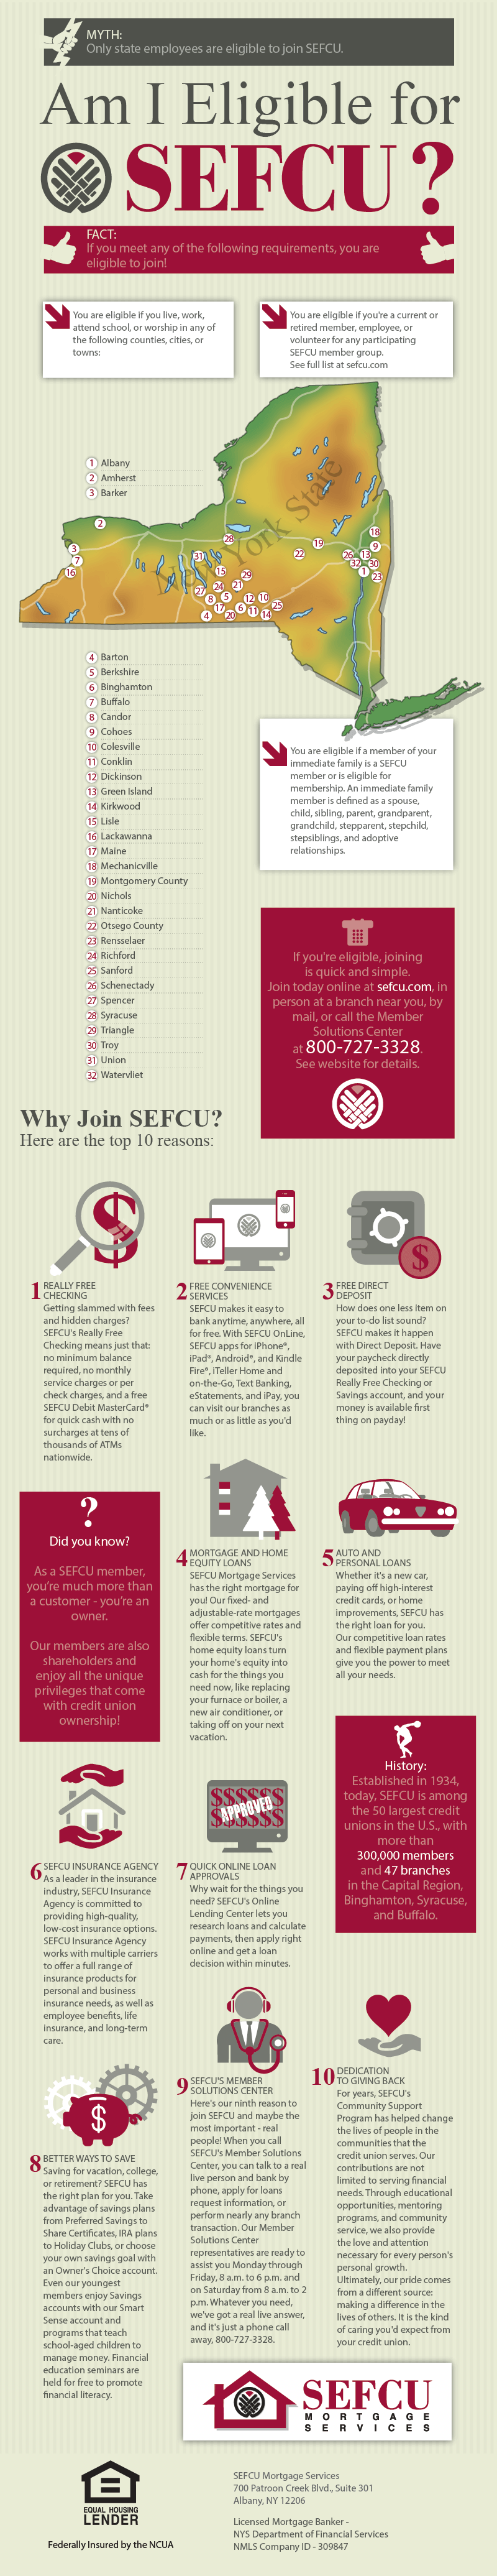 Are You Eligible For SEFCU? #infographic